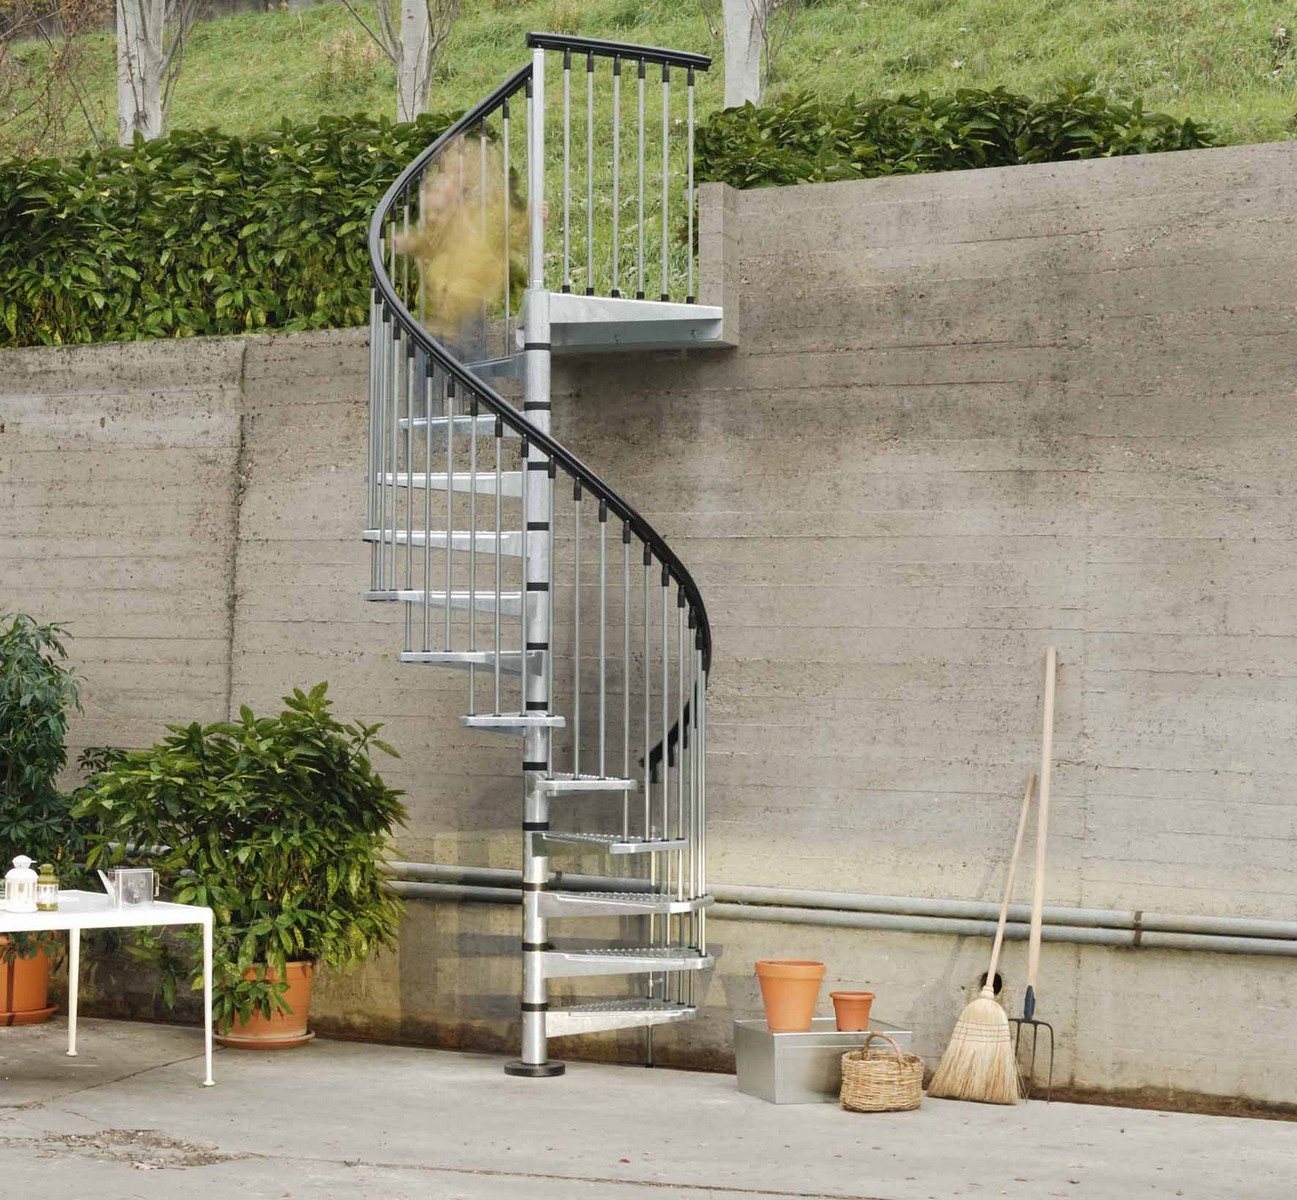 Best ideas about Exterior Spiral Staircase . Save or Pin Metal Outdoor Spiral Staircase Now.